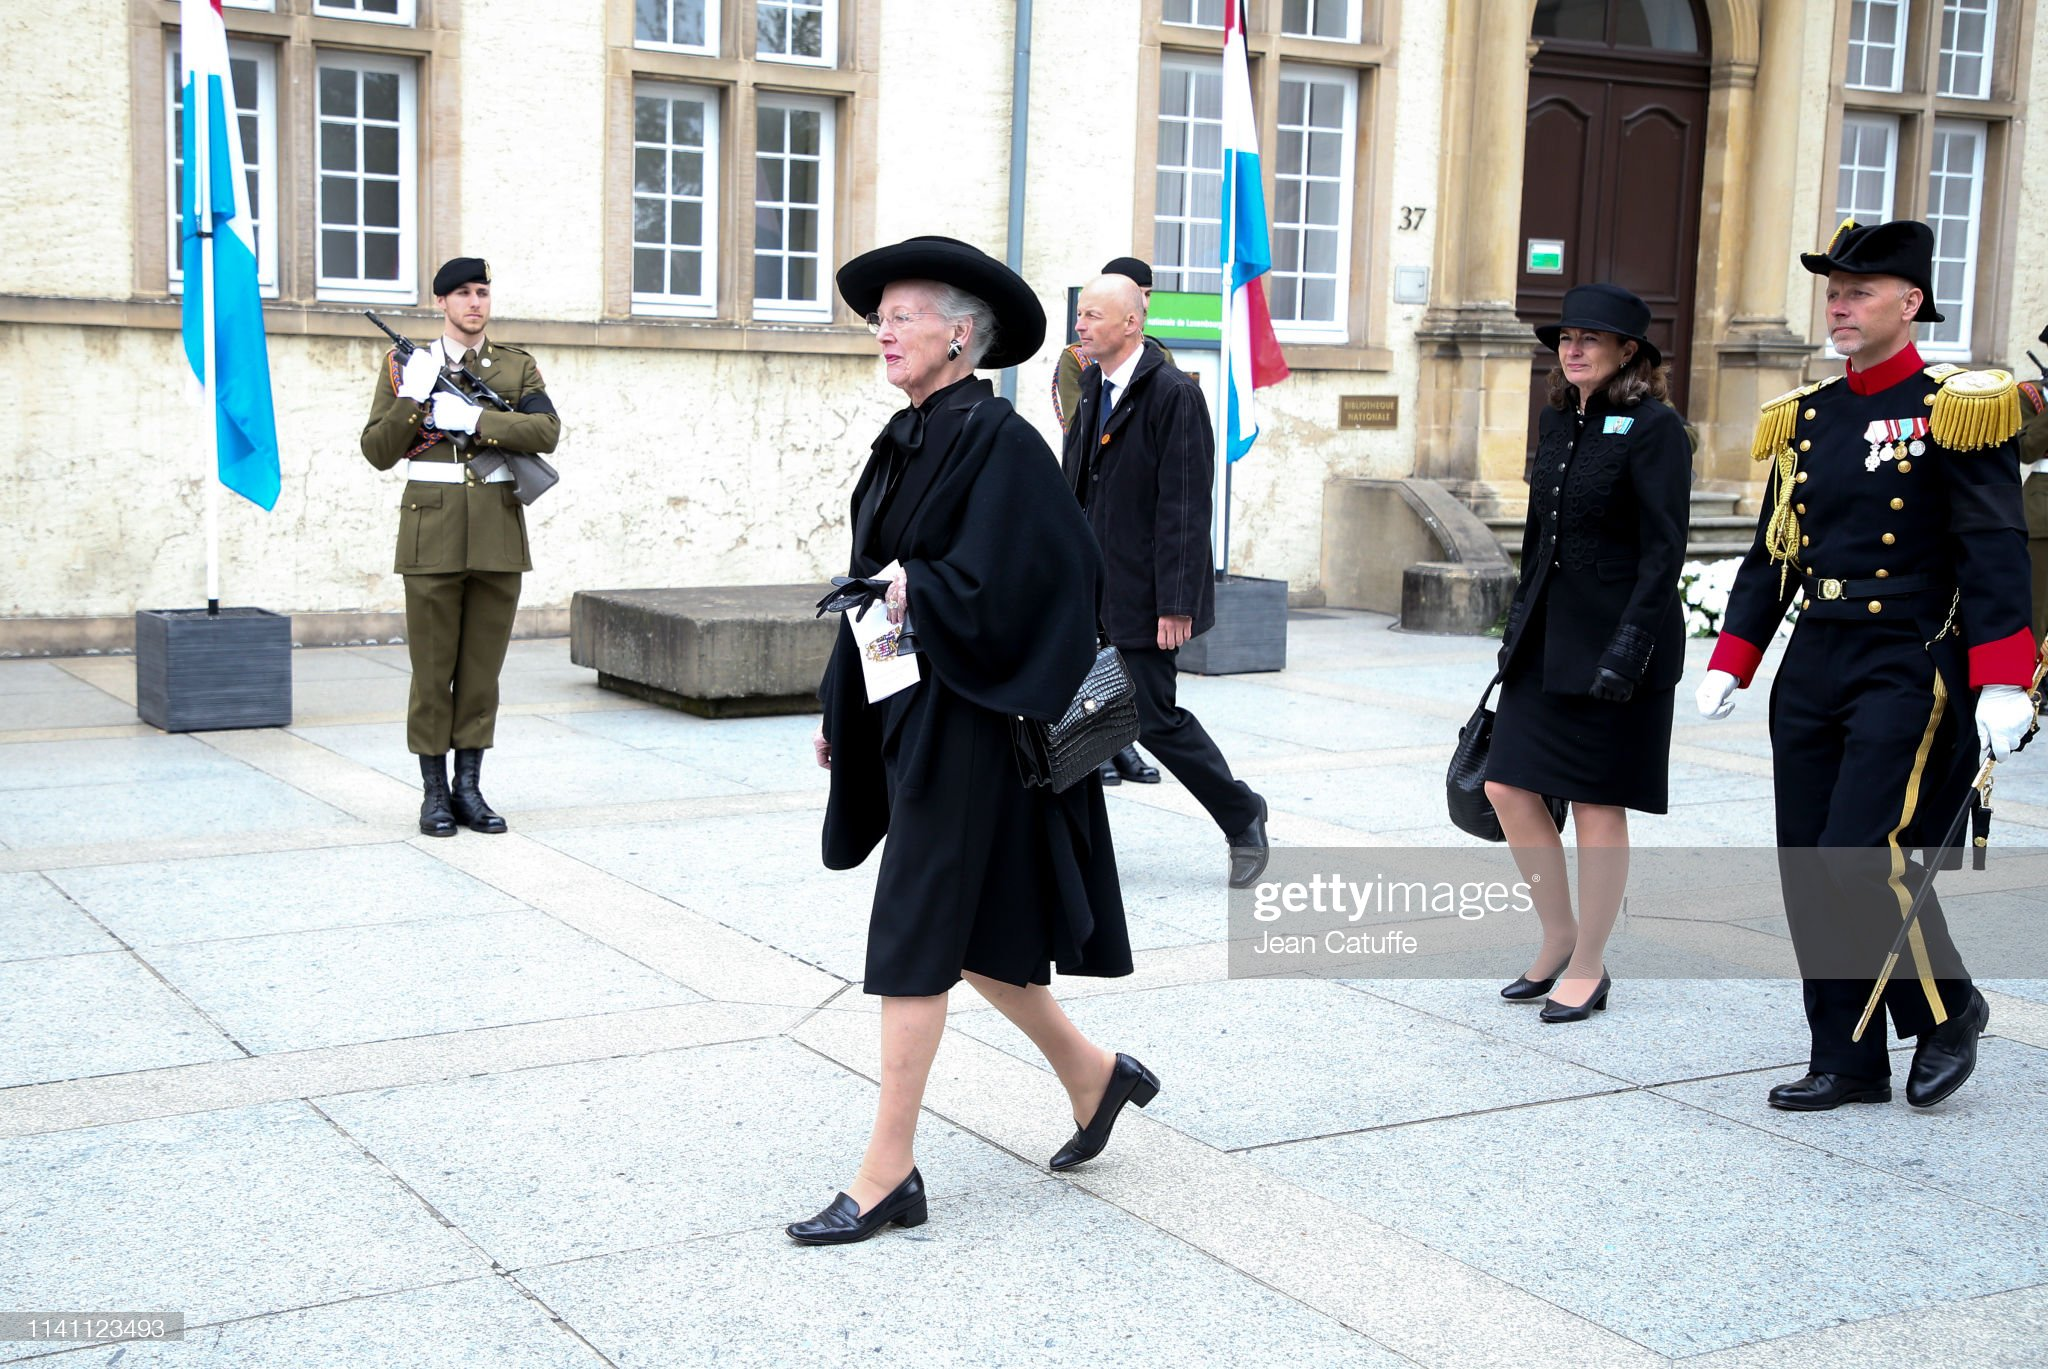 https://media.gettyimages.com/photos/queen-margrethe-ii-of-denmark-leaves-the-funerals-of-grand-duke-jean-picture-id1141123493?s=2048x2048